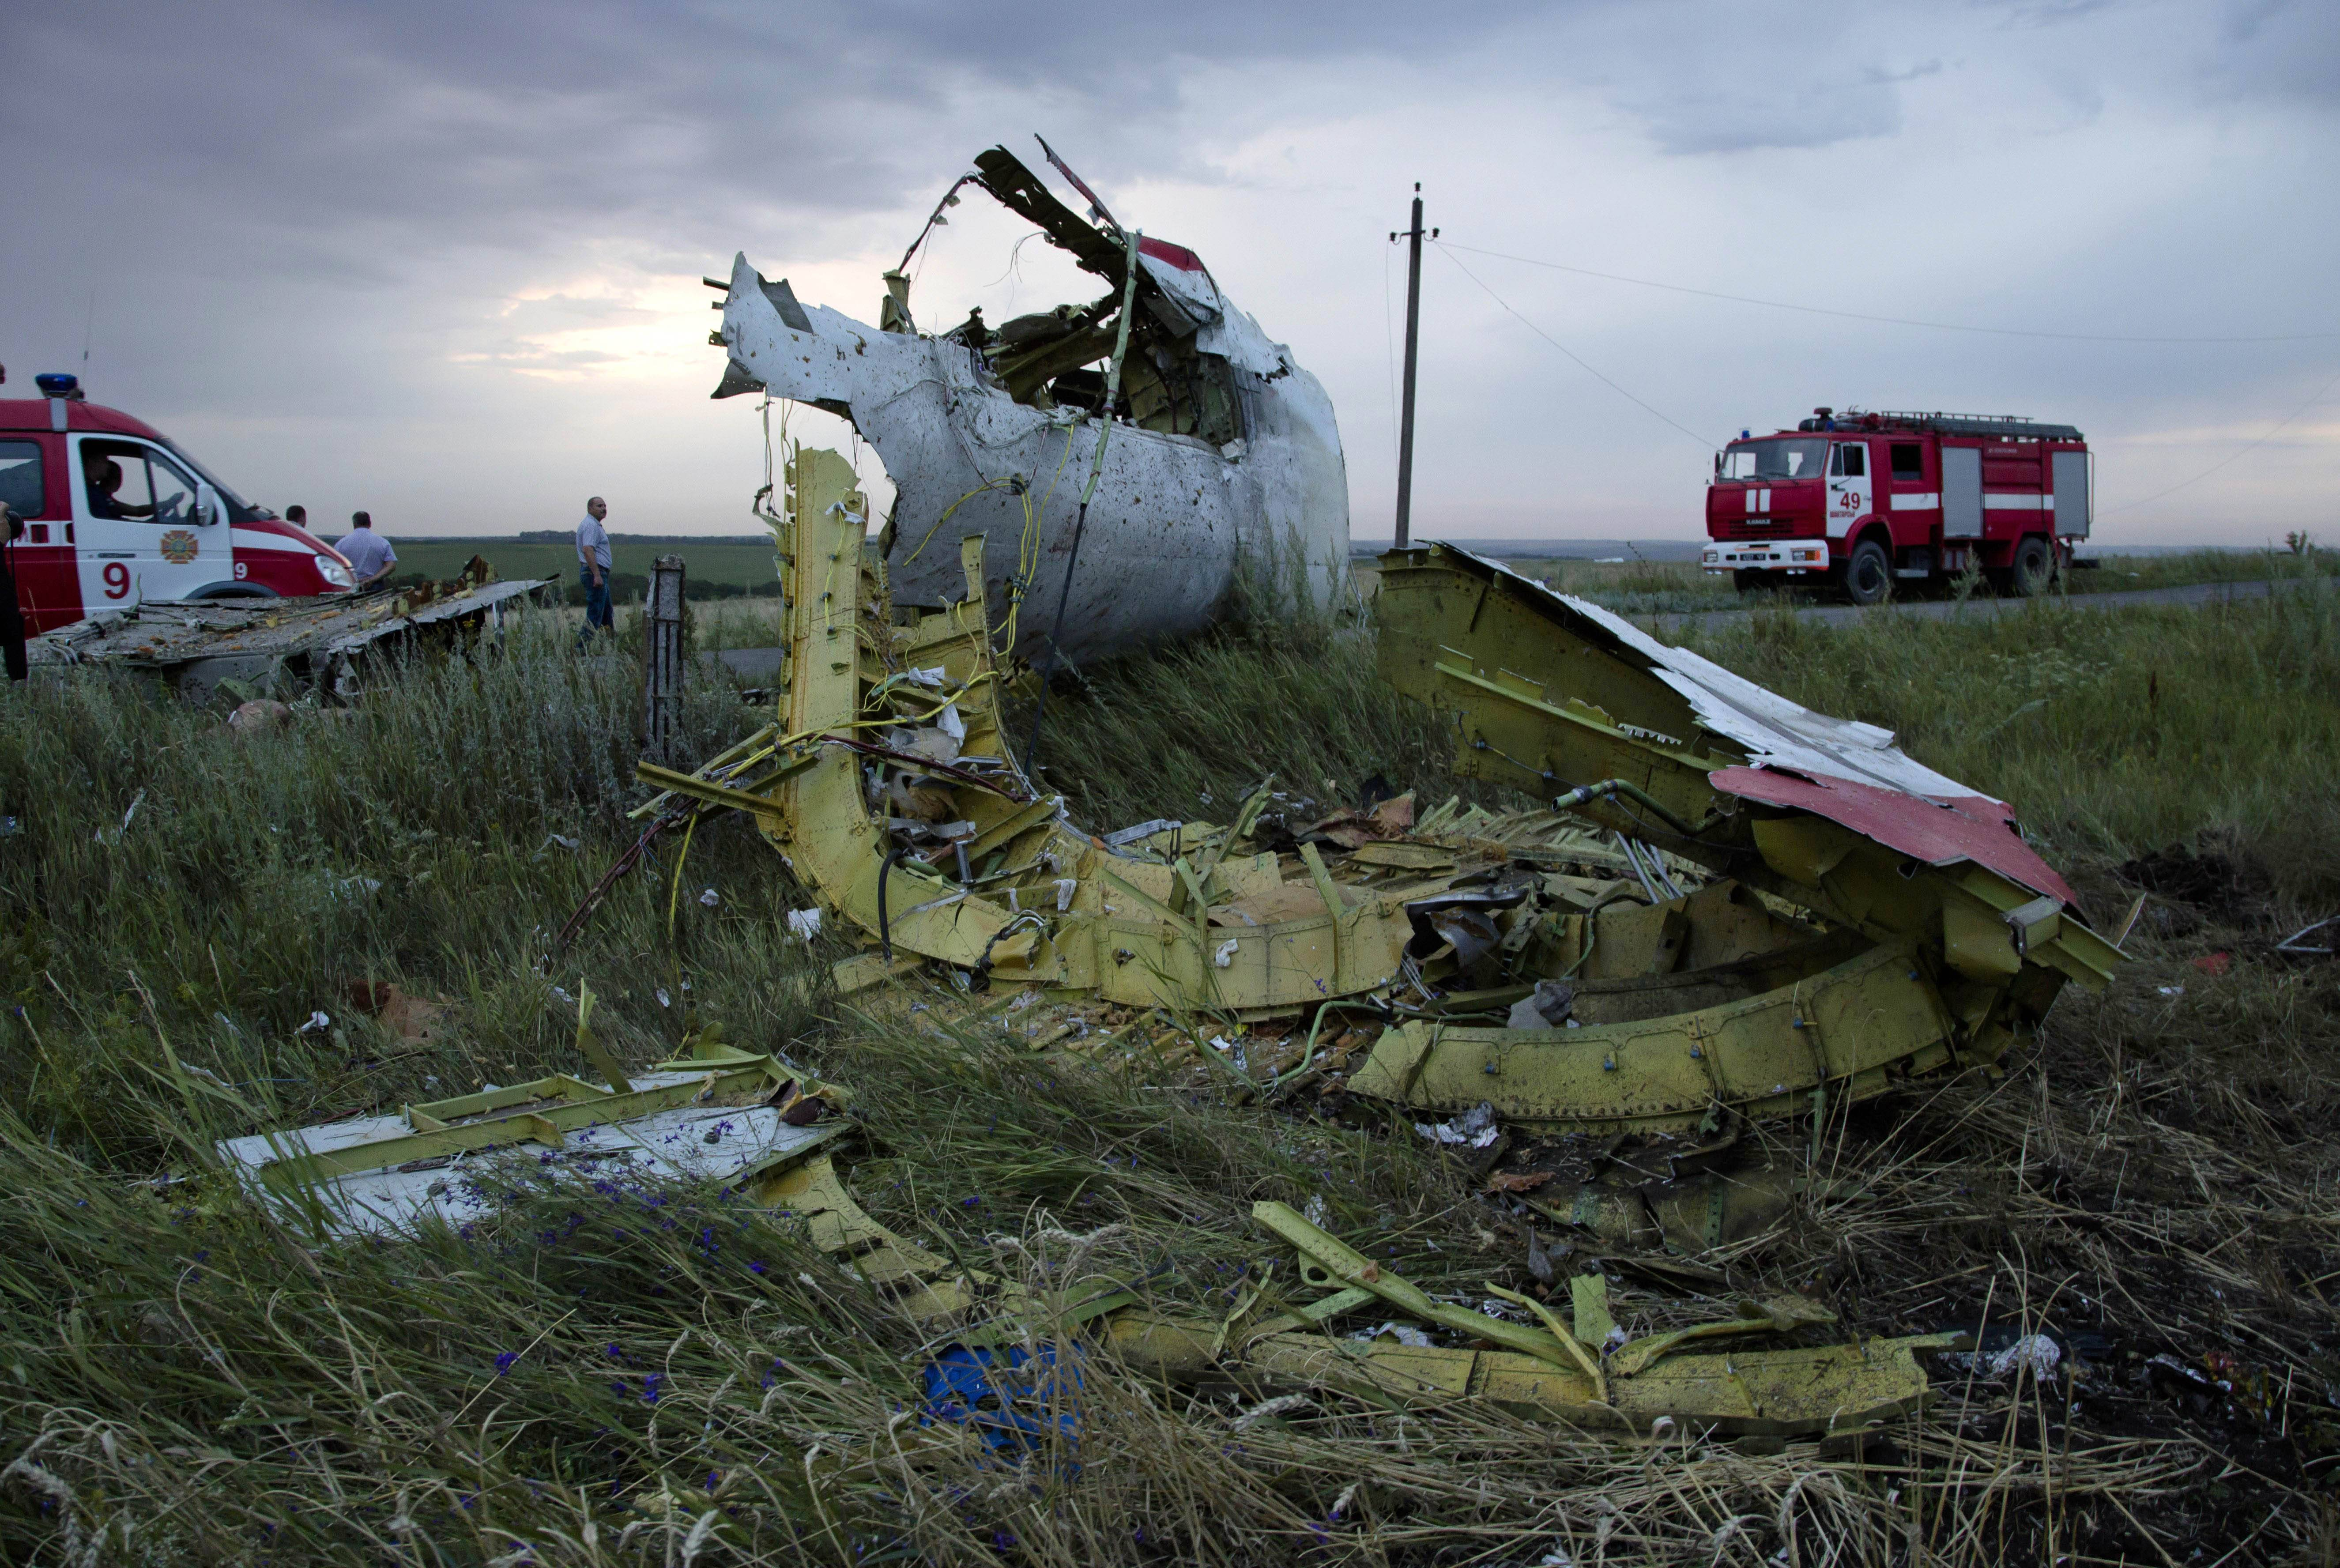 Firefighters arrive at the crash site July 17 of a passenger plane near the village of H